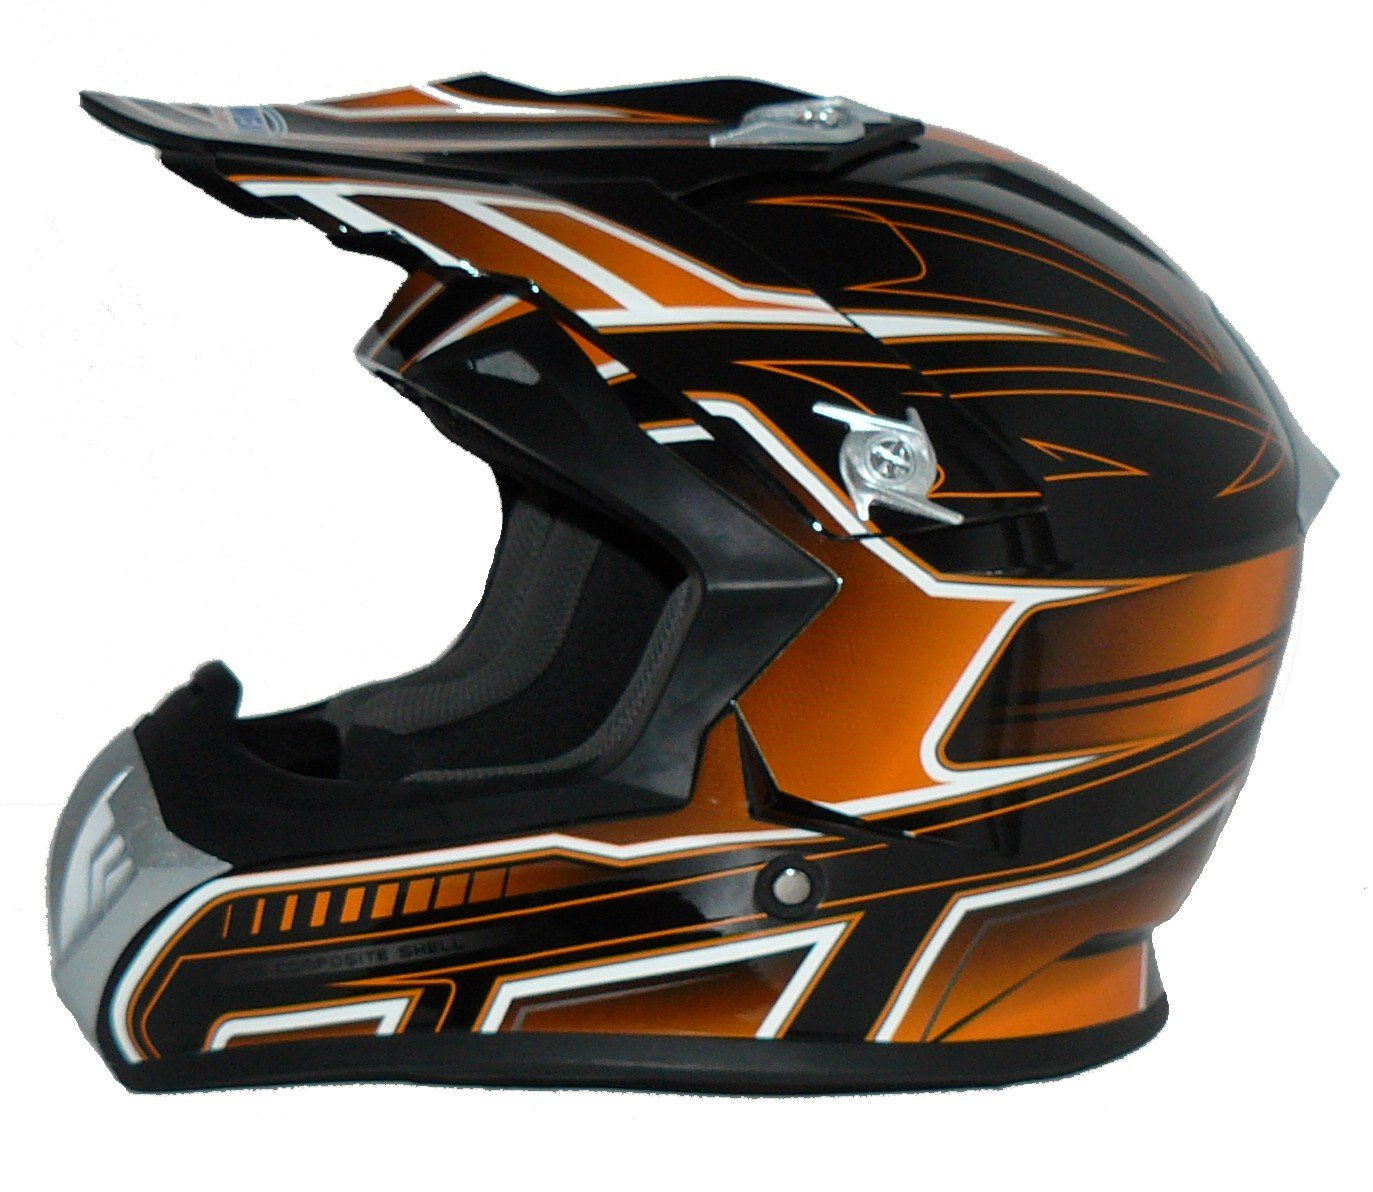 Protectwear casque de moto Taille: XS casque de Cross FS603-OR casque Enduro orange-noir